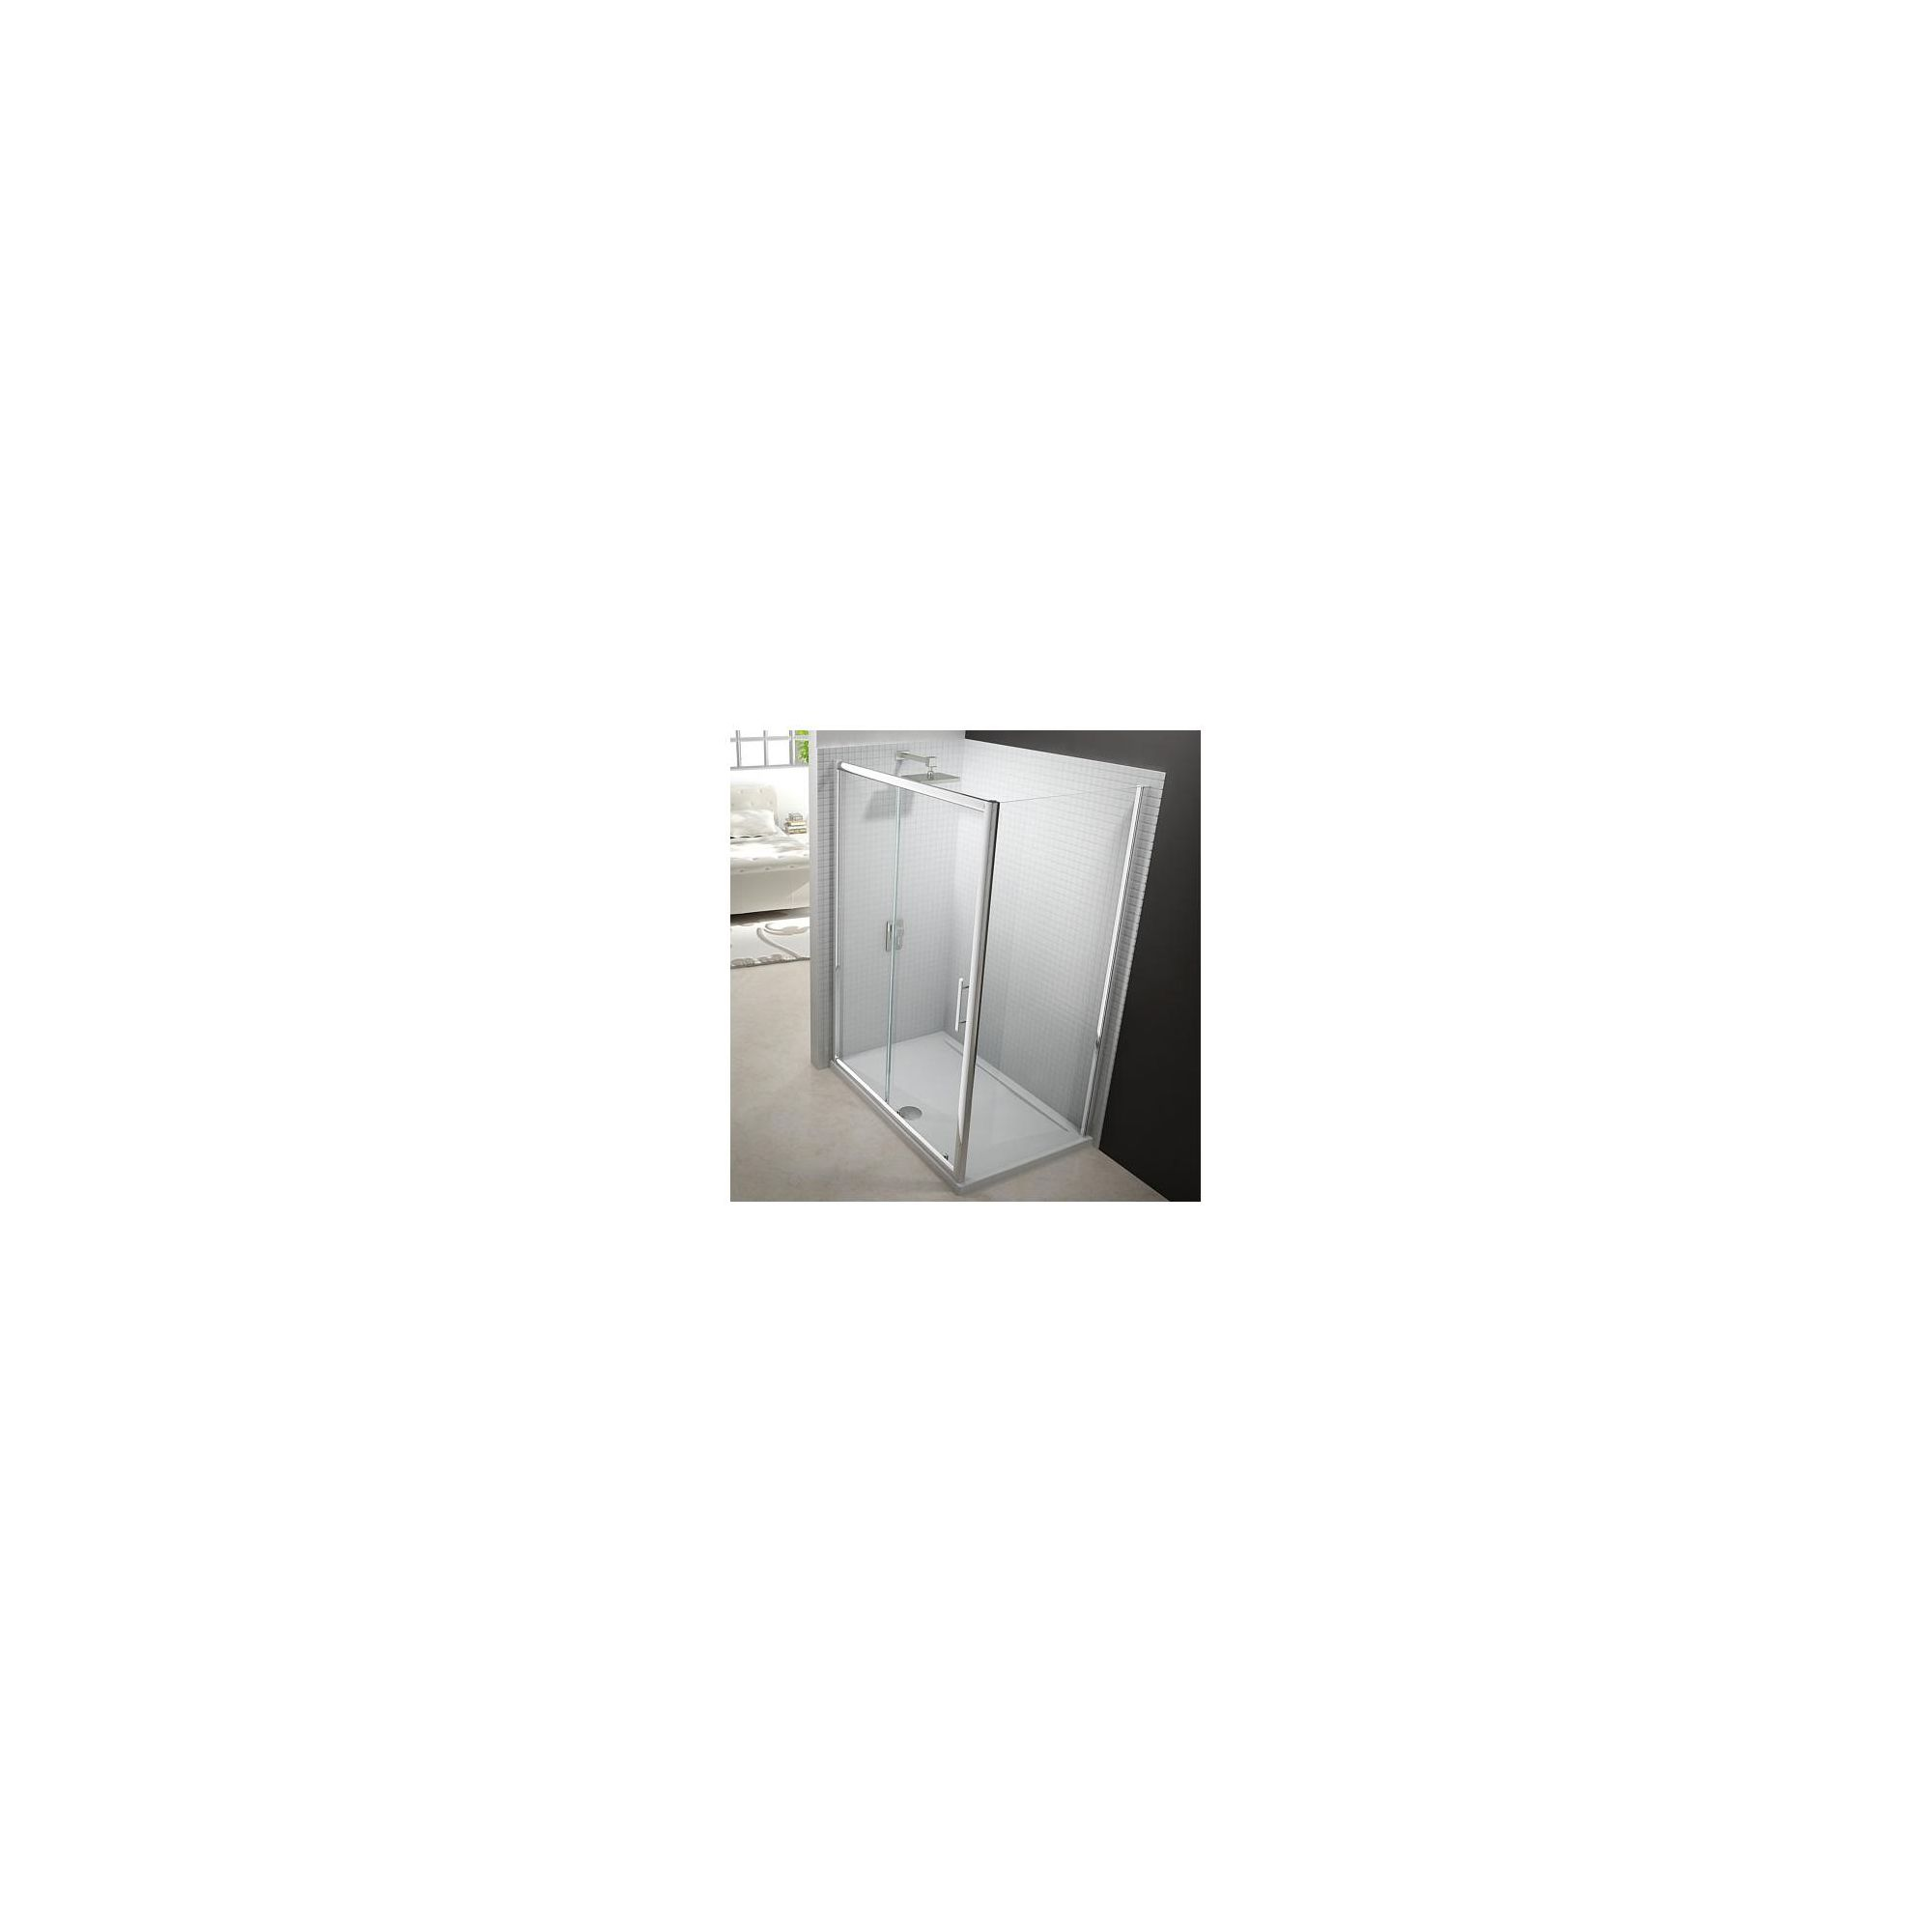 Merlyn Series 6 Sliding Shower Door, 1600mm Wide, Chrome Frame, 6mm Glass at Tesco Direct